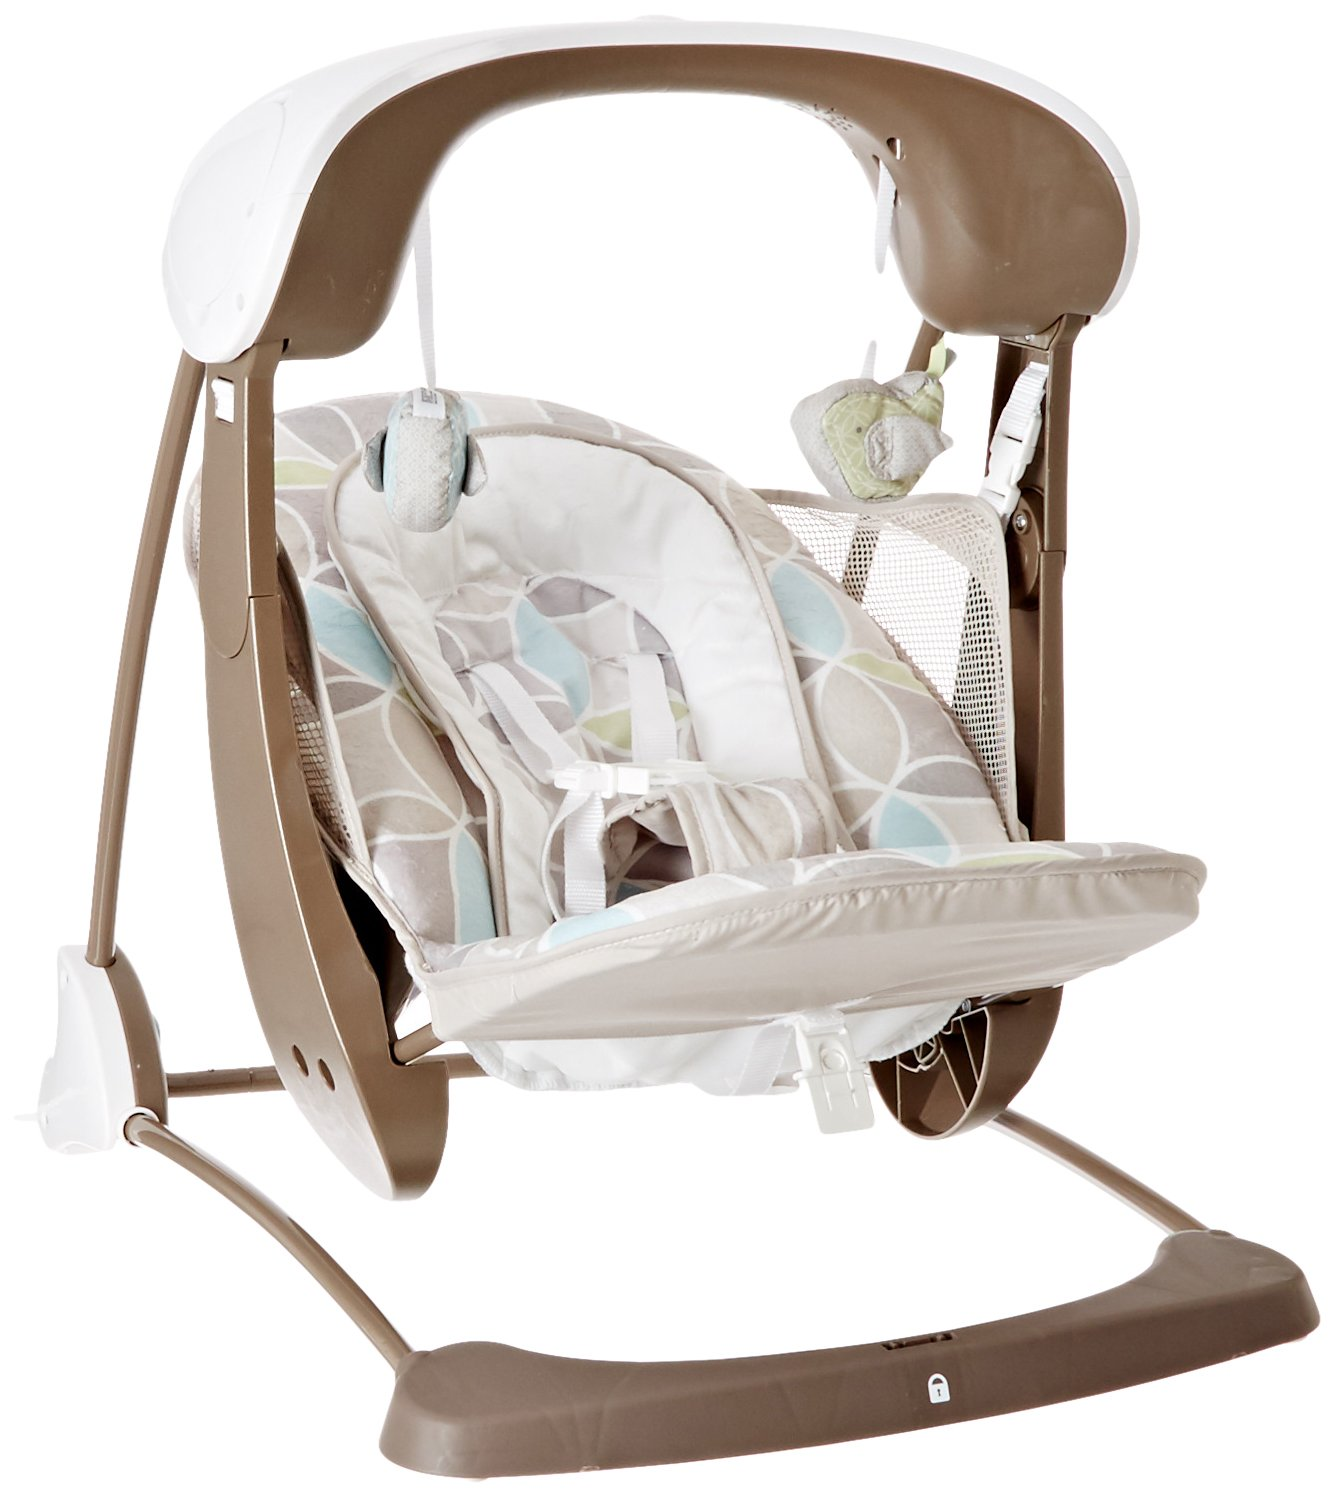 on tiny to sheepskin him baby sister photo his toddler newborn with a swing stock in sleeping standing next